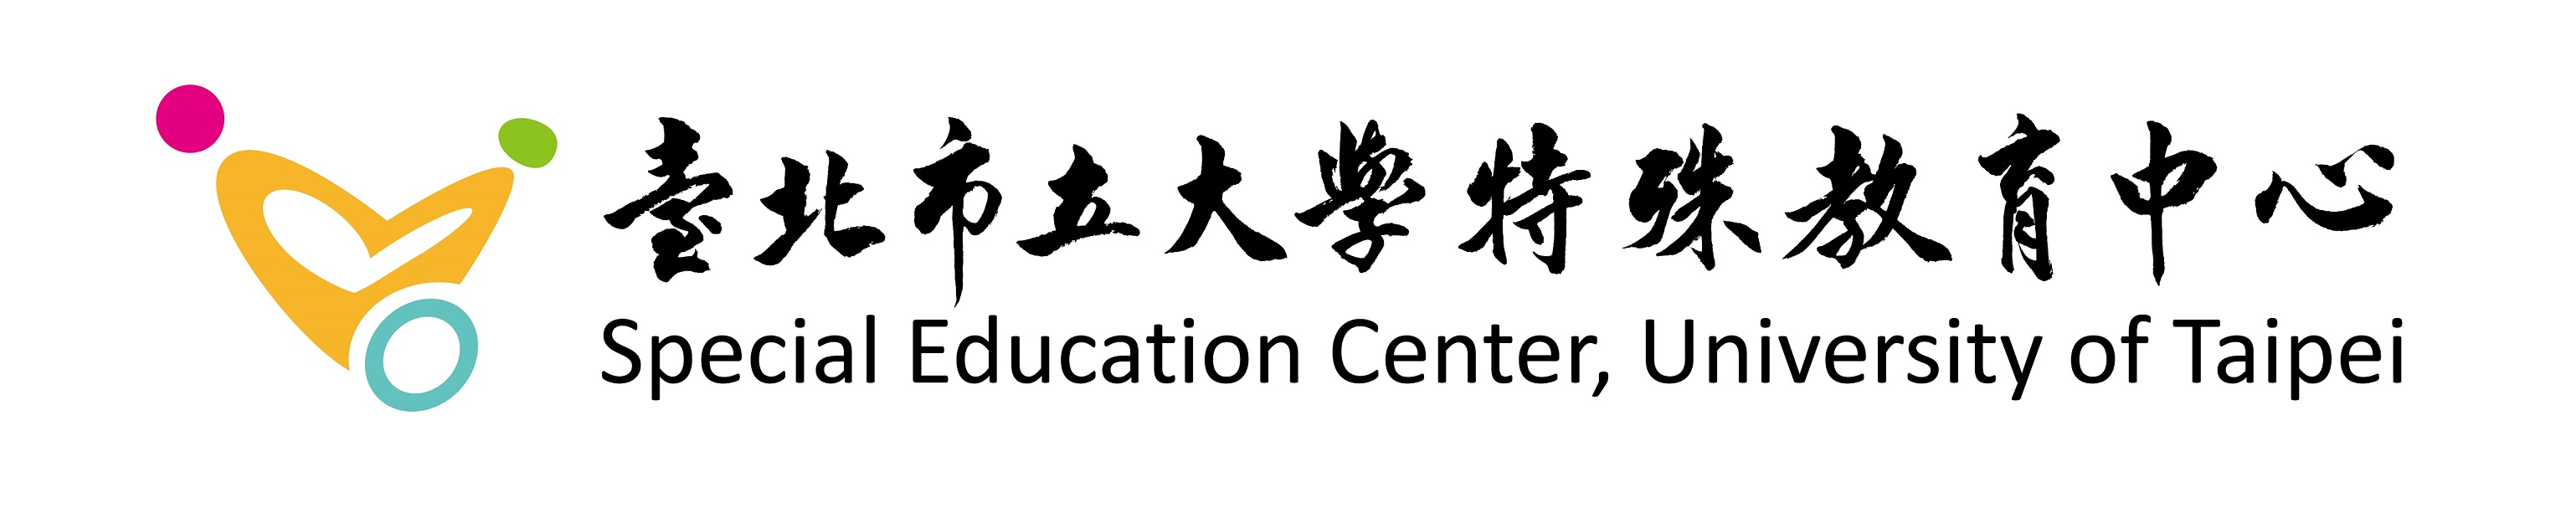 Special Education Center, University of Taipei